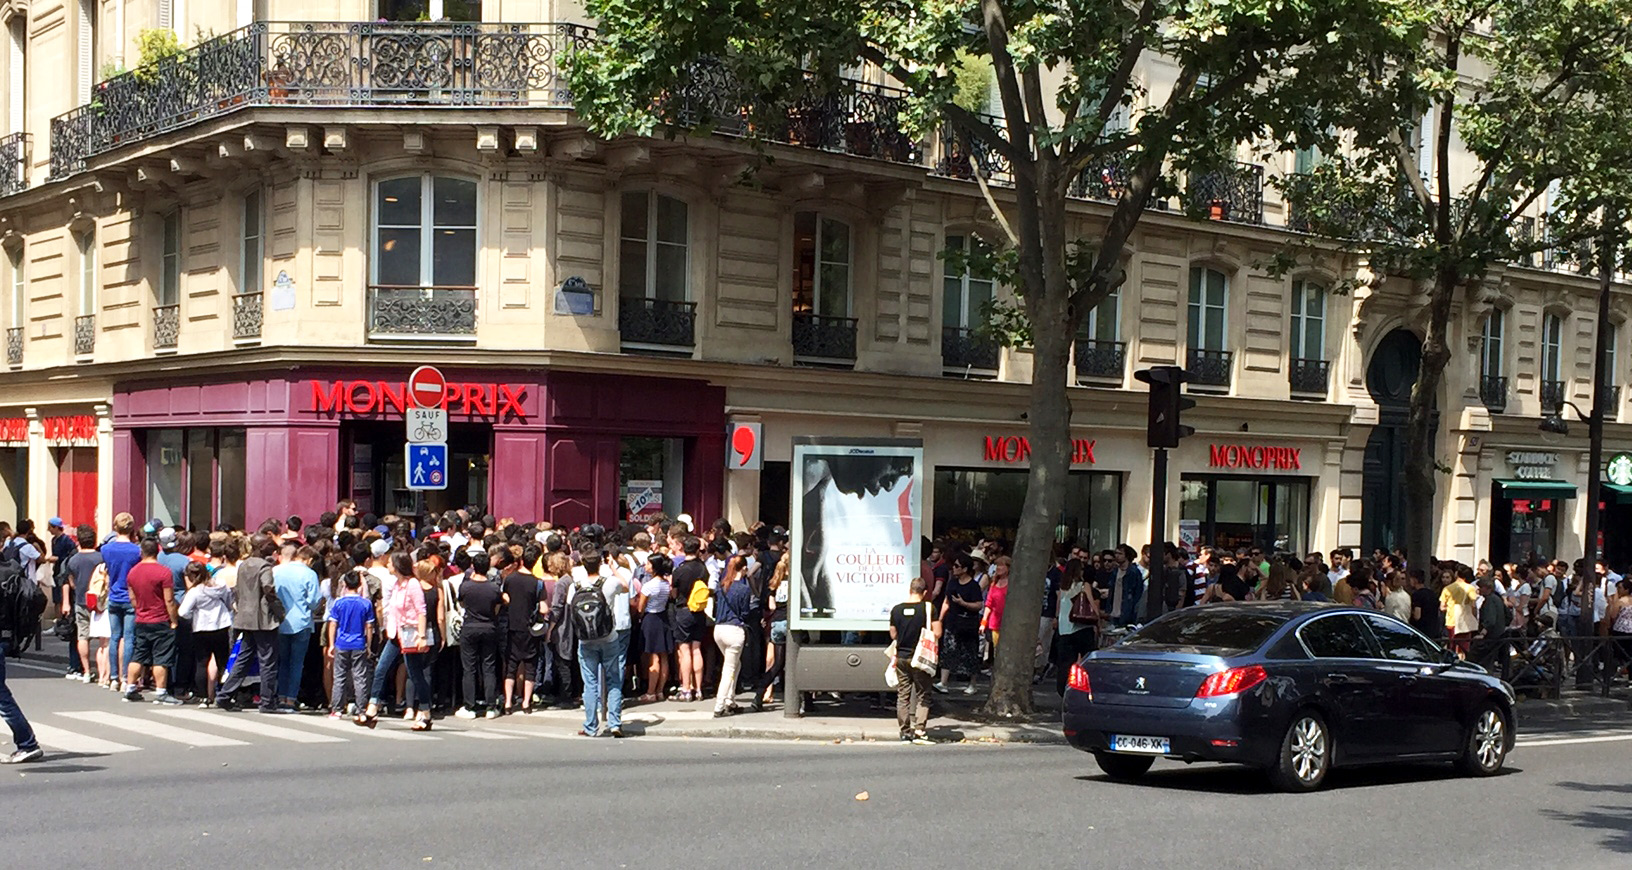 Part of the huge line at a Monoprix store for a Pokémon GO prize